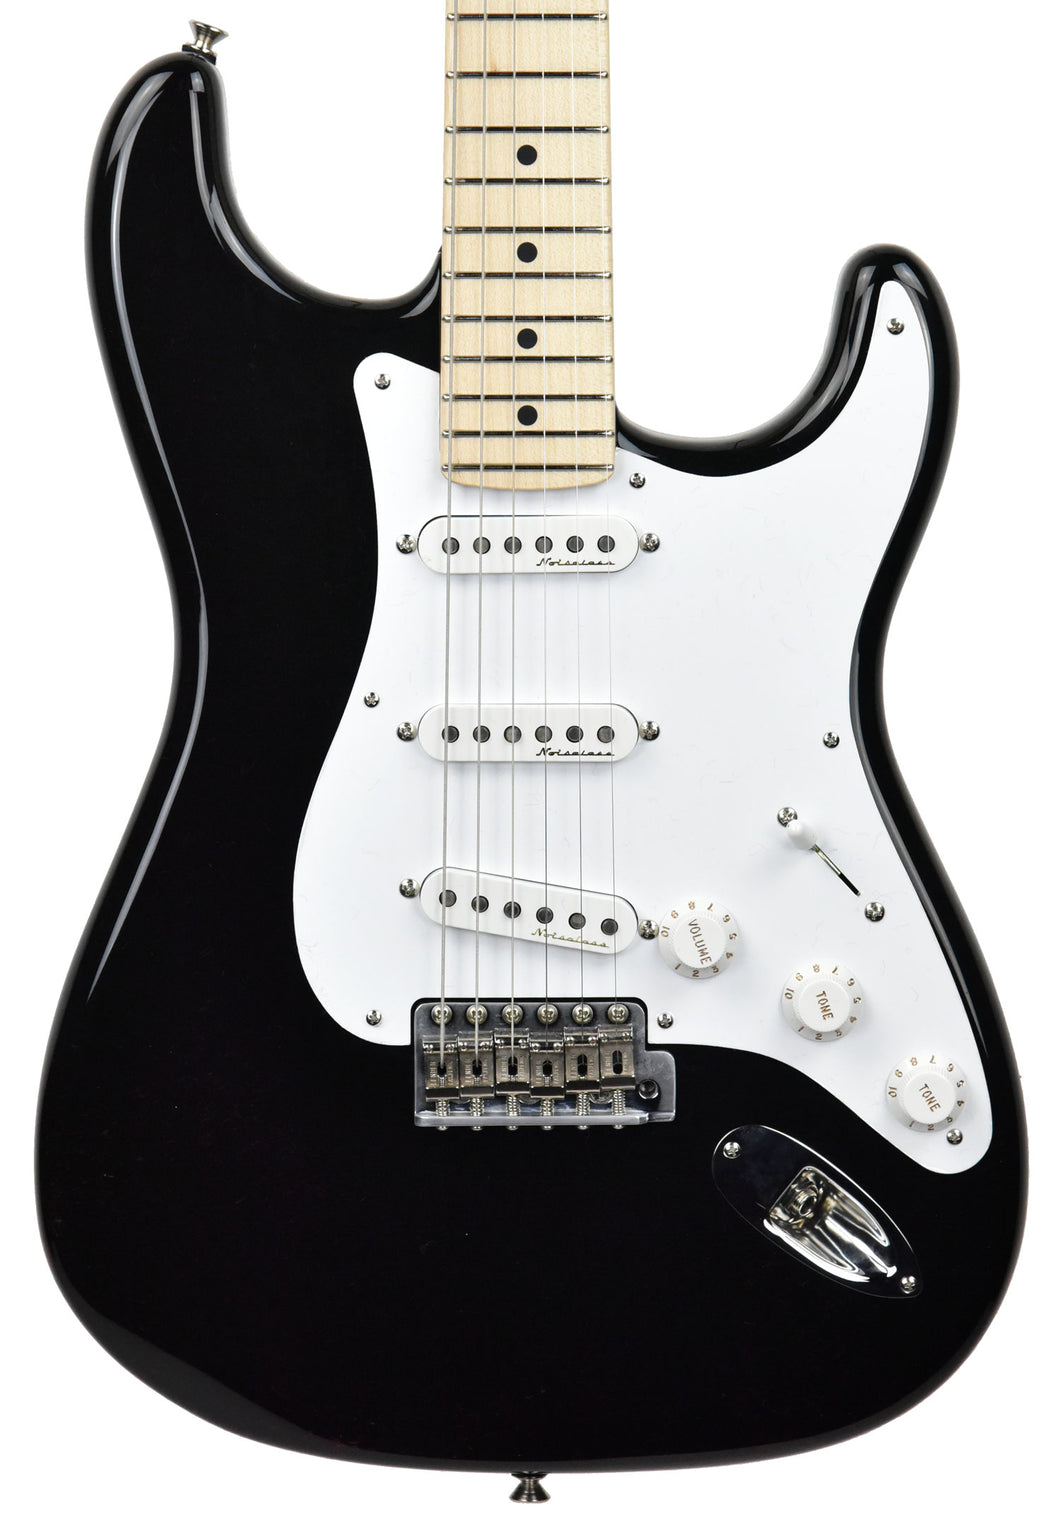 Fender Custom Shop Eric Clapton Stratocaster Masterbuilt by Todd Krause Black CZ538430